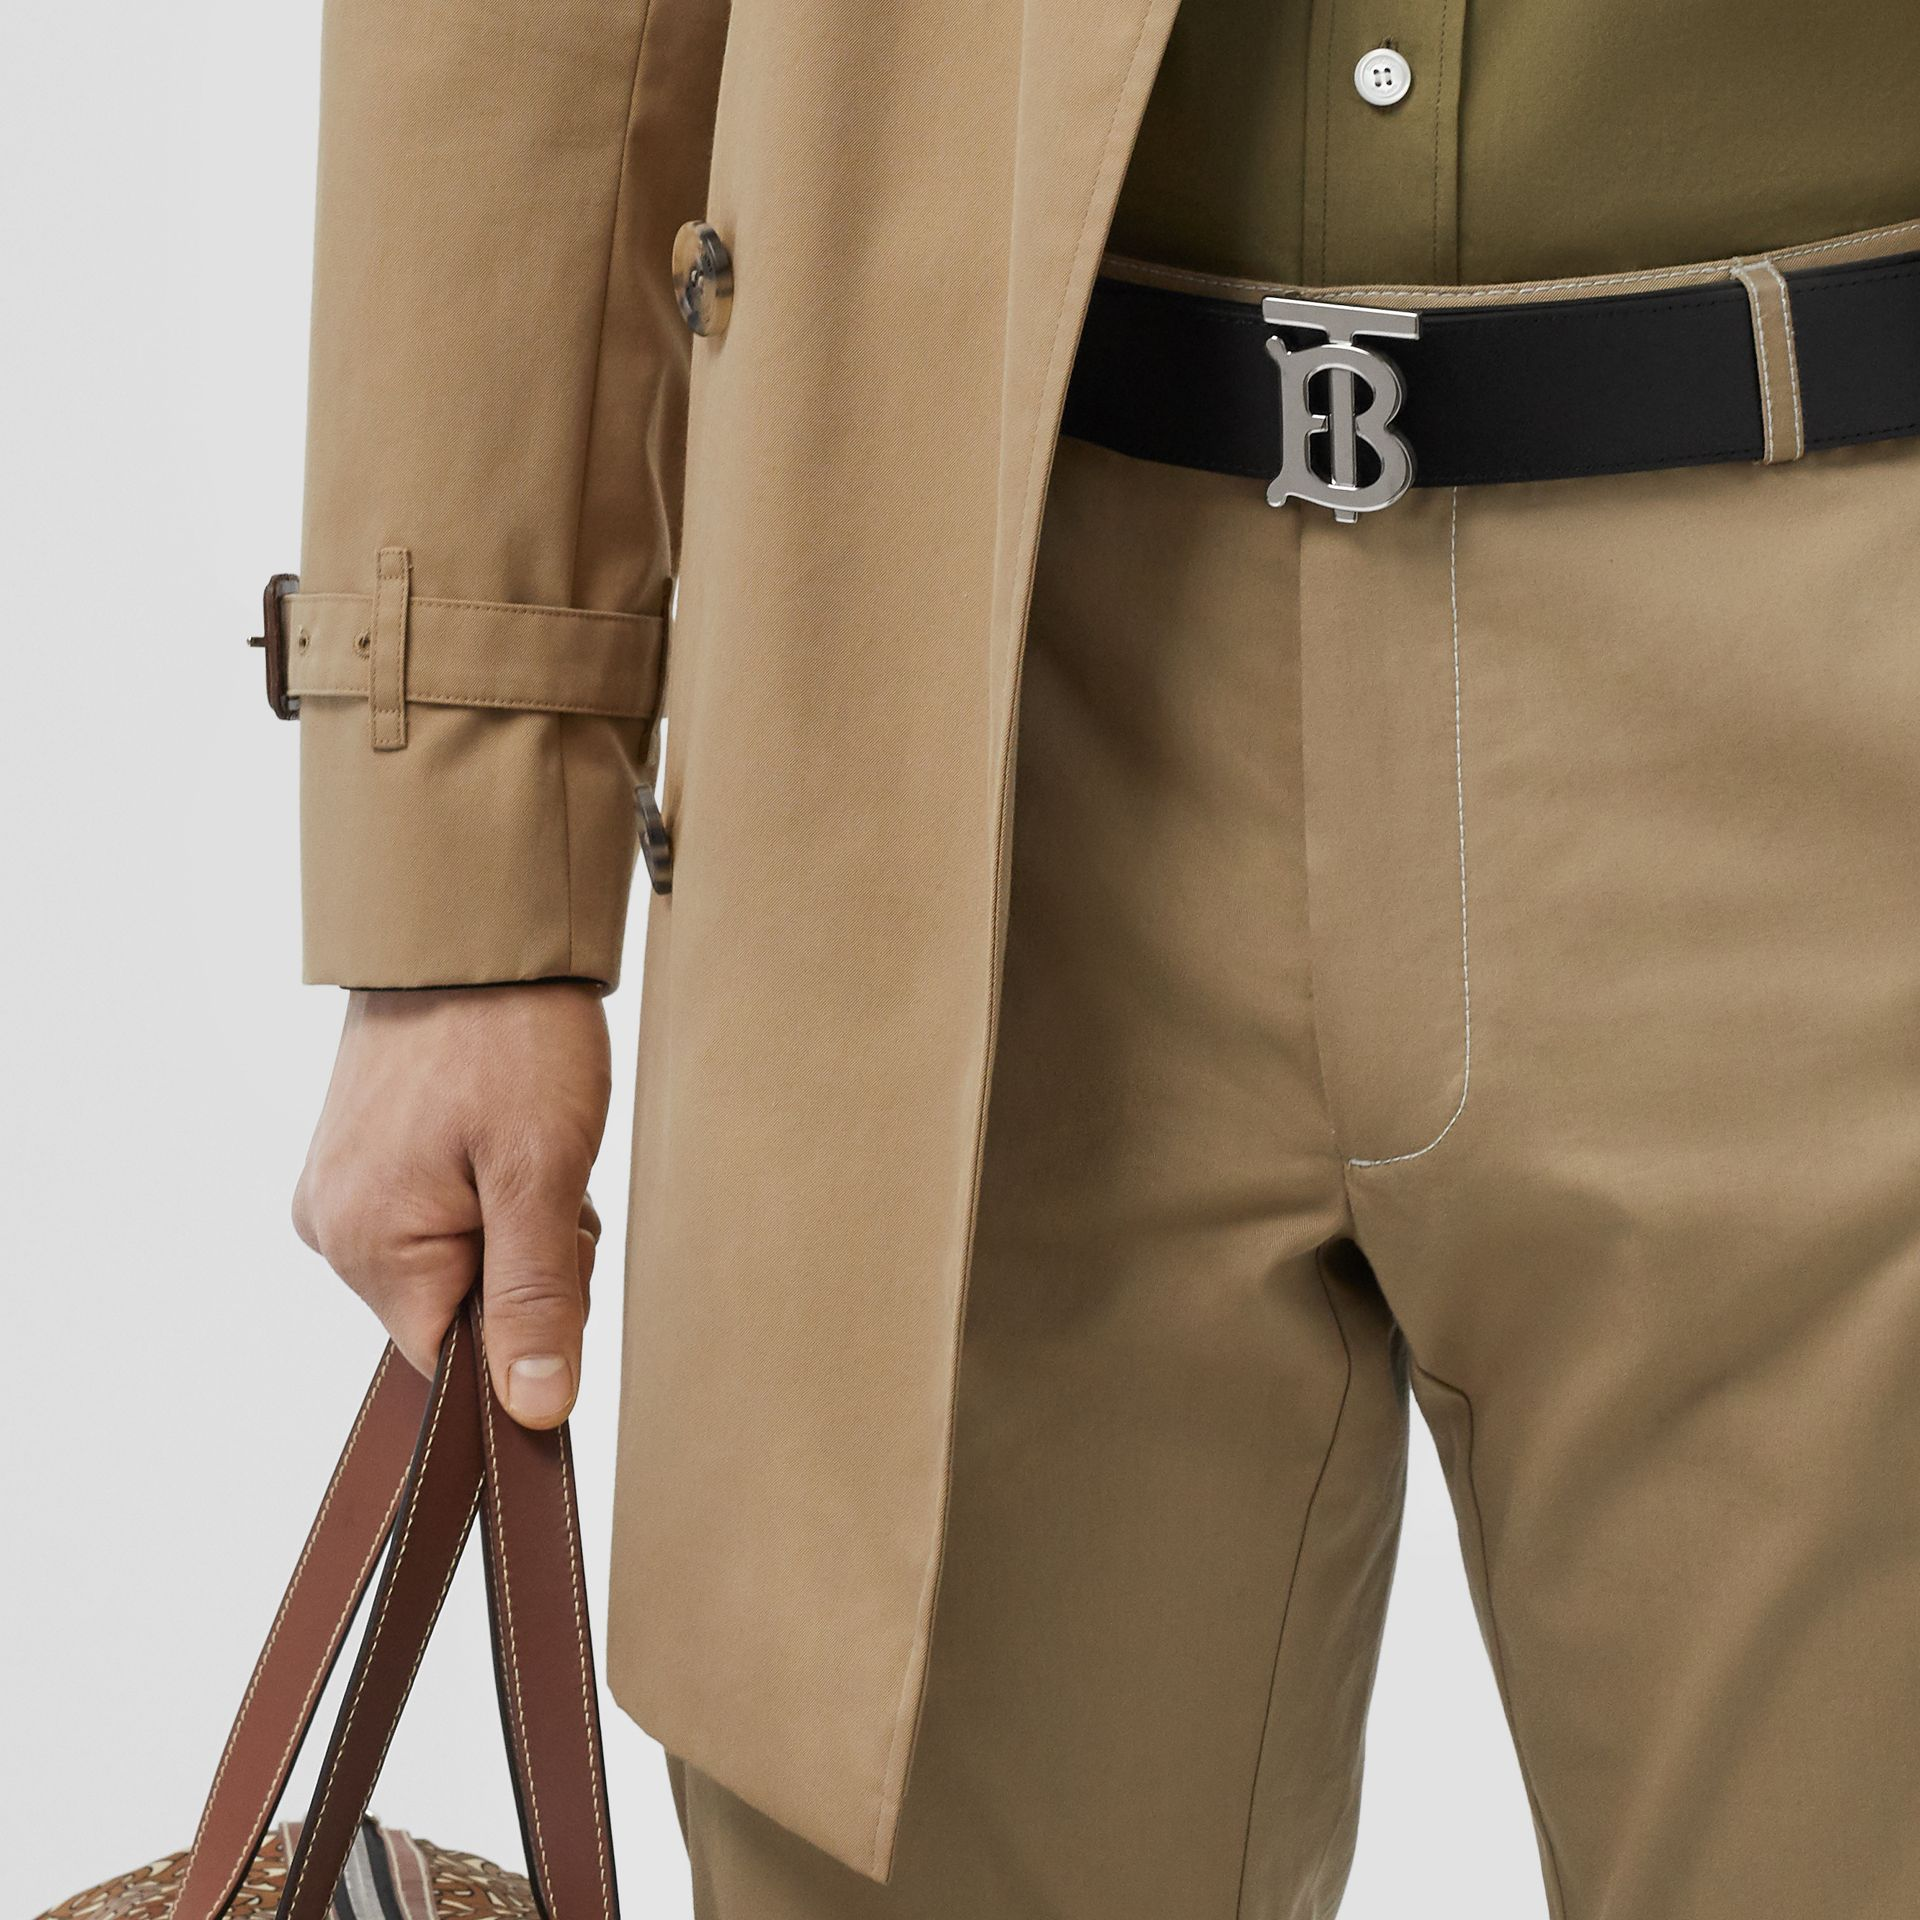 Reversible Monogram Motif Leather Belt in Tan/black - Men | Burberry - gallery image 7